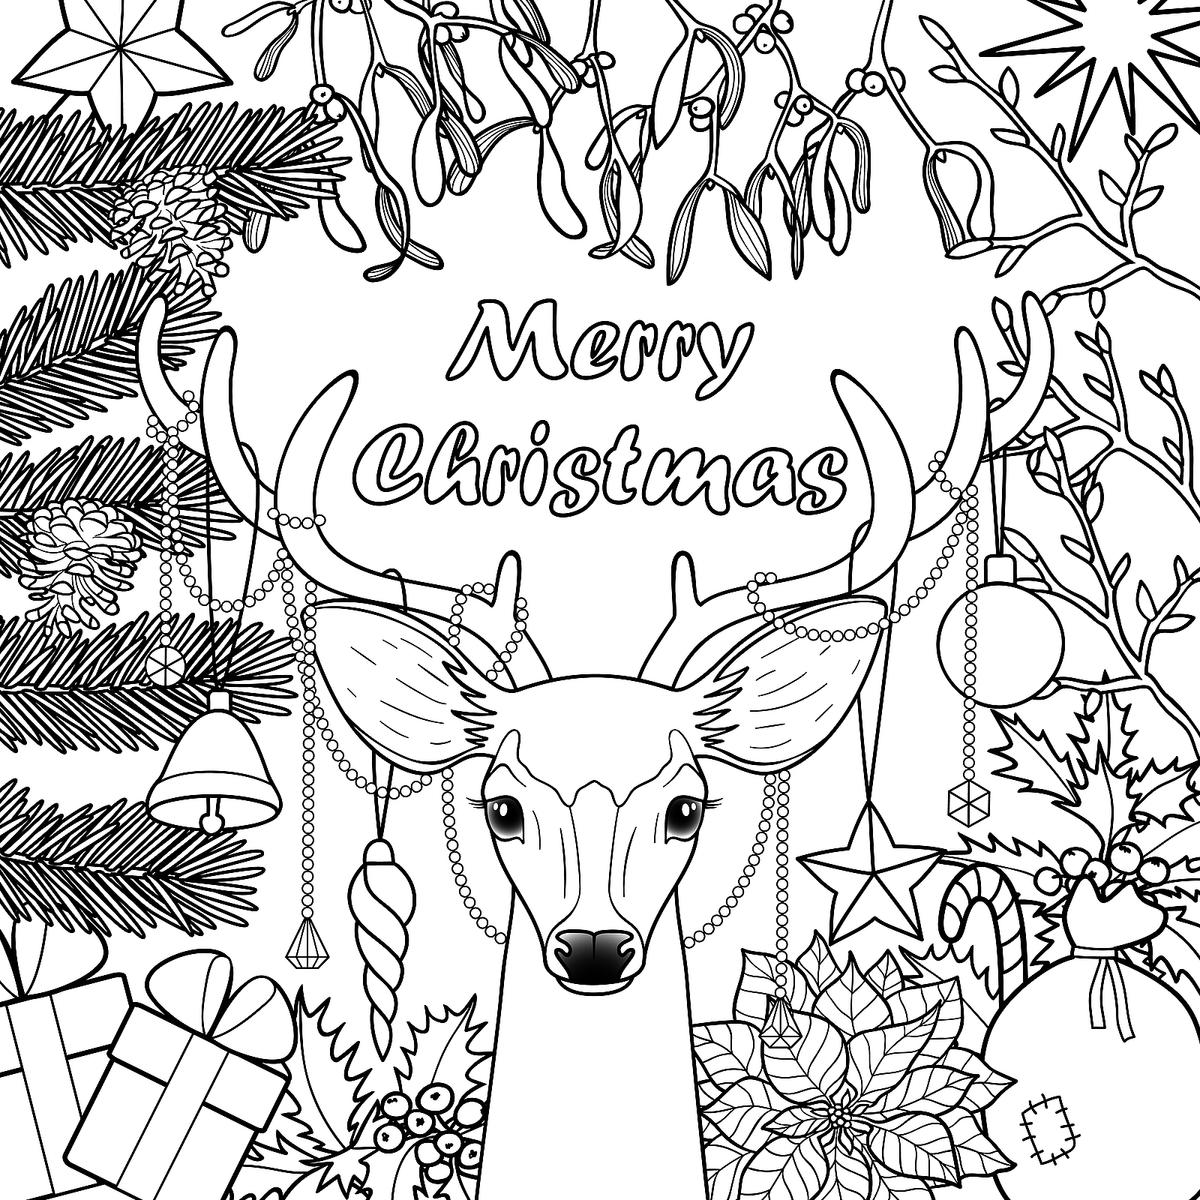 Christmas Coloring Pages Coloring Cks